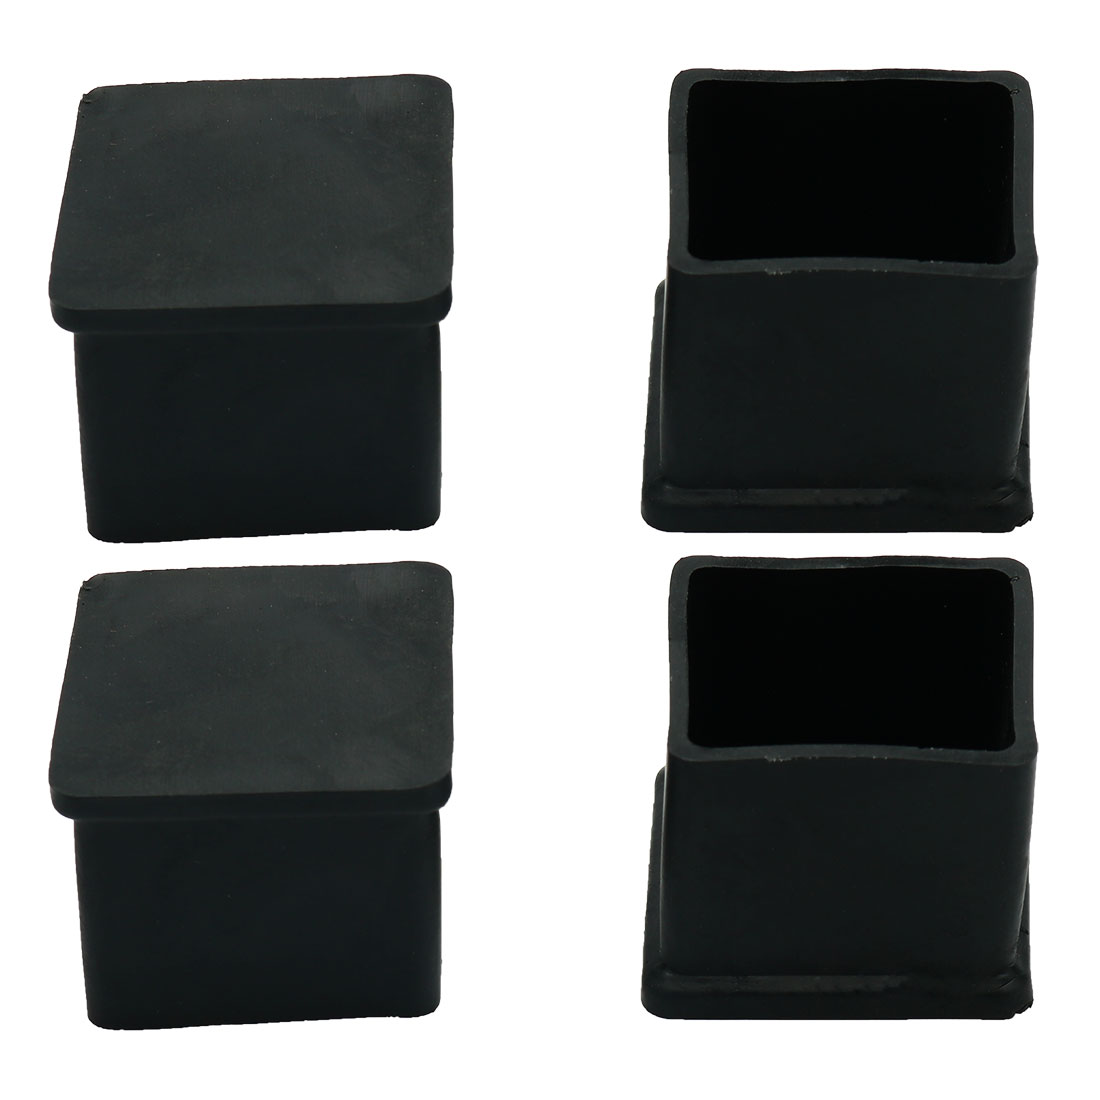 Square Chair Table Foot Leg Cover Holder Protector Black 4 Pcs